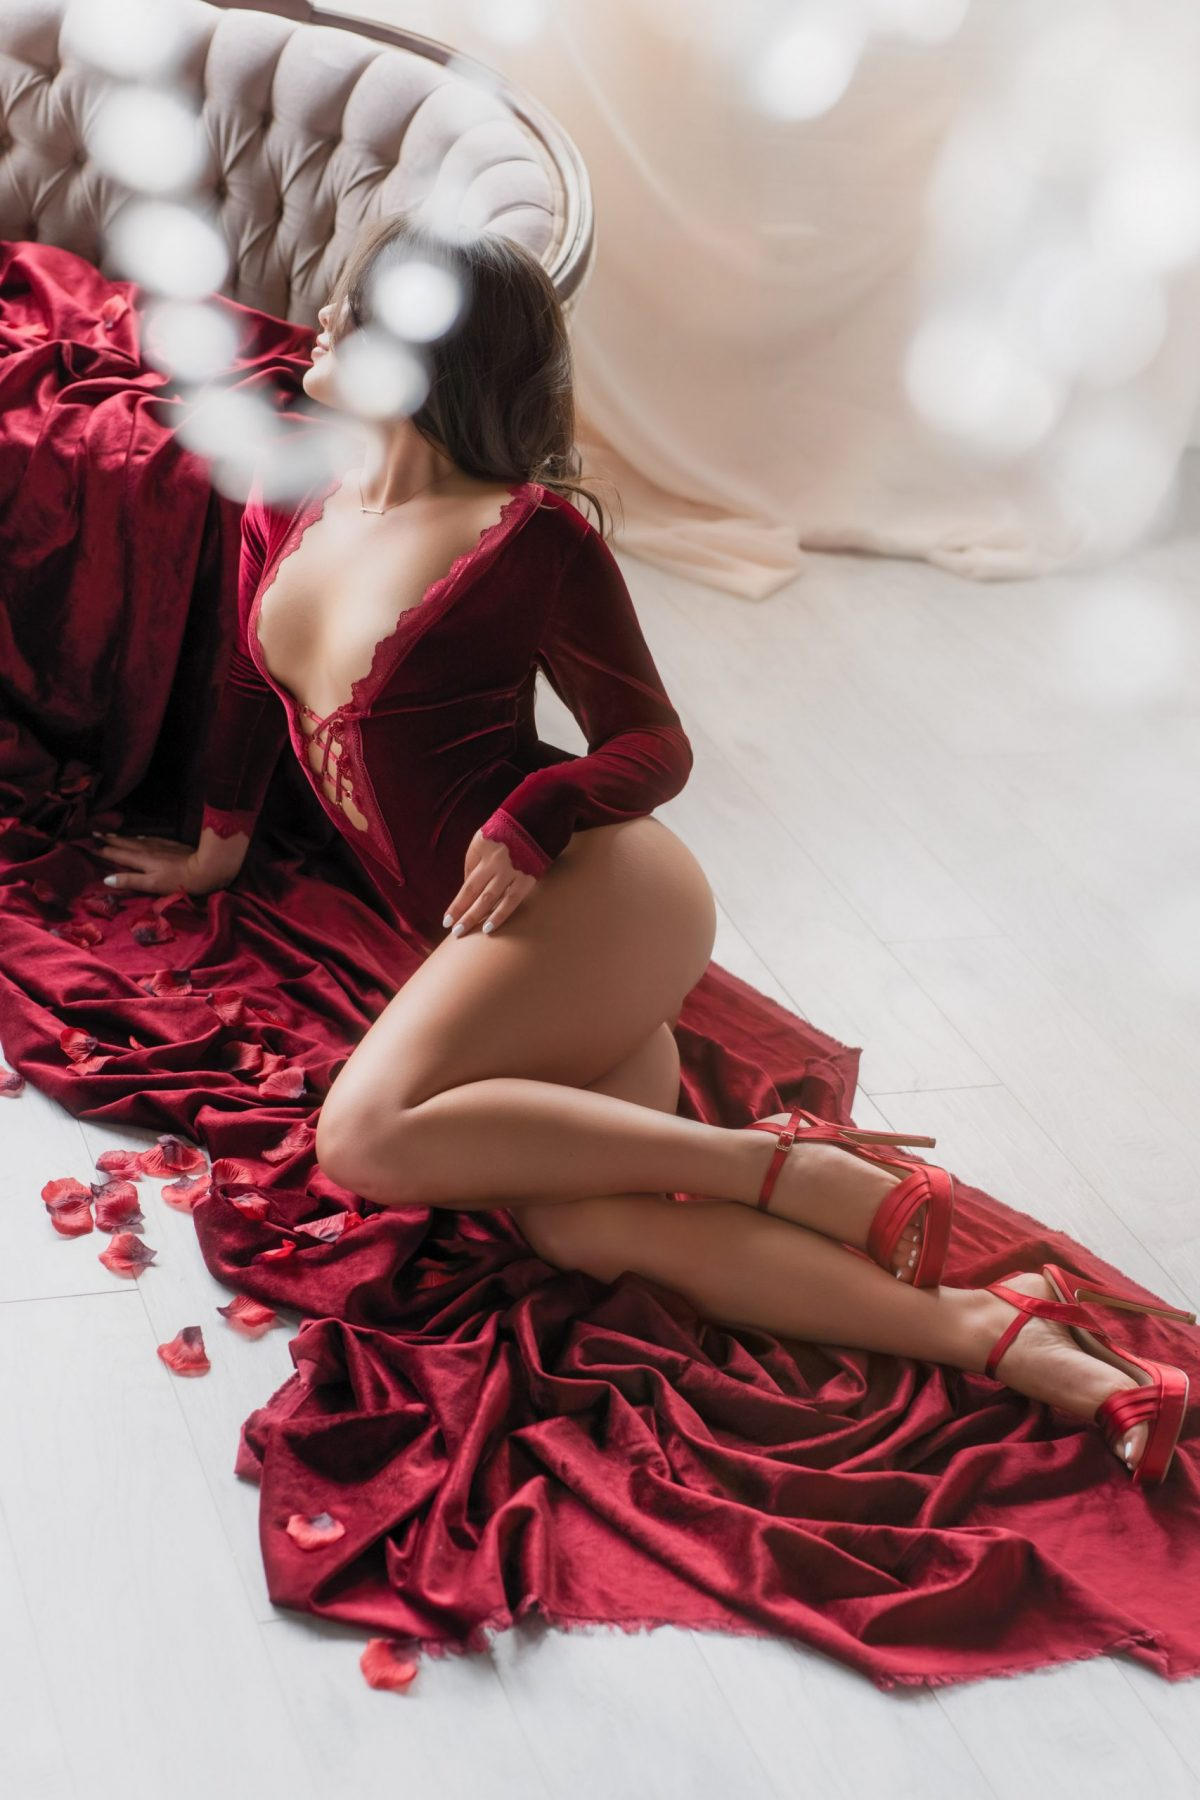 Toronto escorts companion upscale Farrah Interests Duo Couple-friendly Non-smoking Age Young Figure Slender Petite Breasts Natural Hair Brunette Ethnicity European Tattoos Small Large New Photos